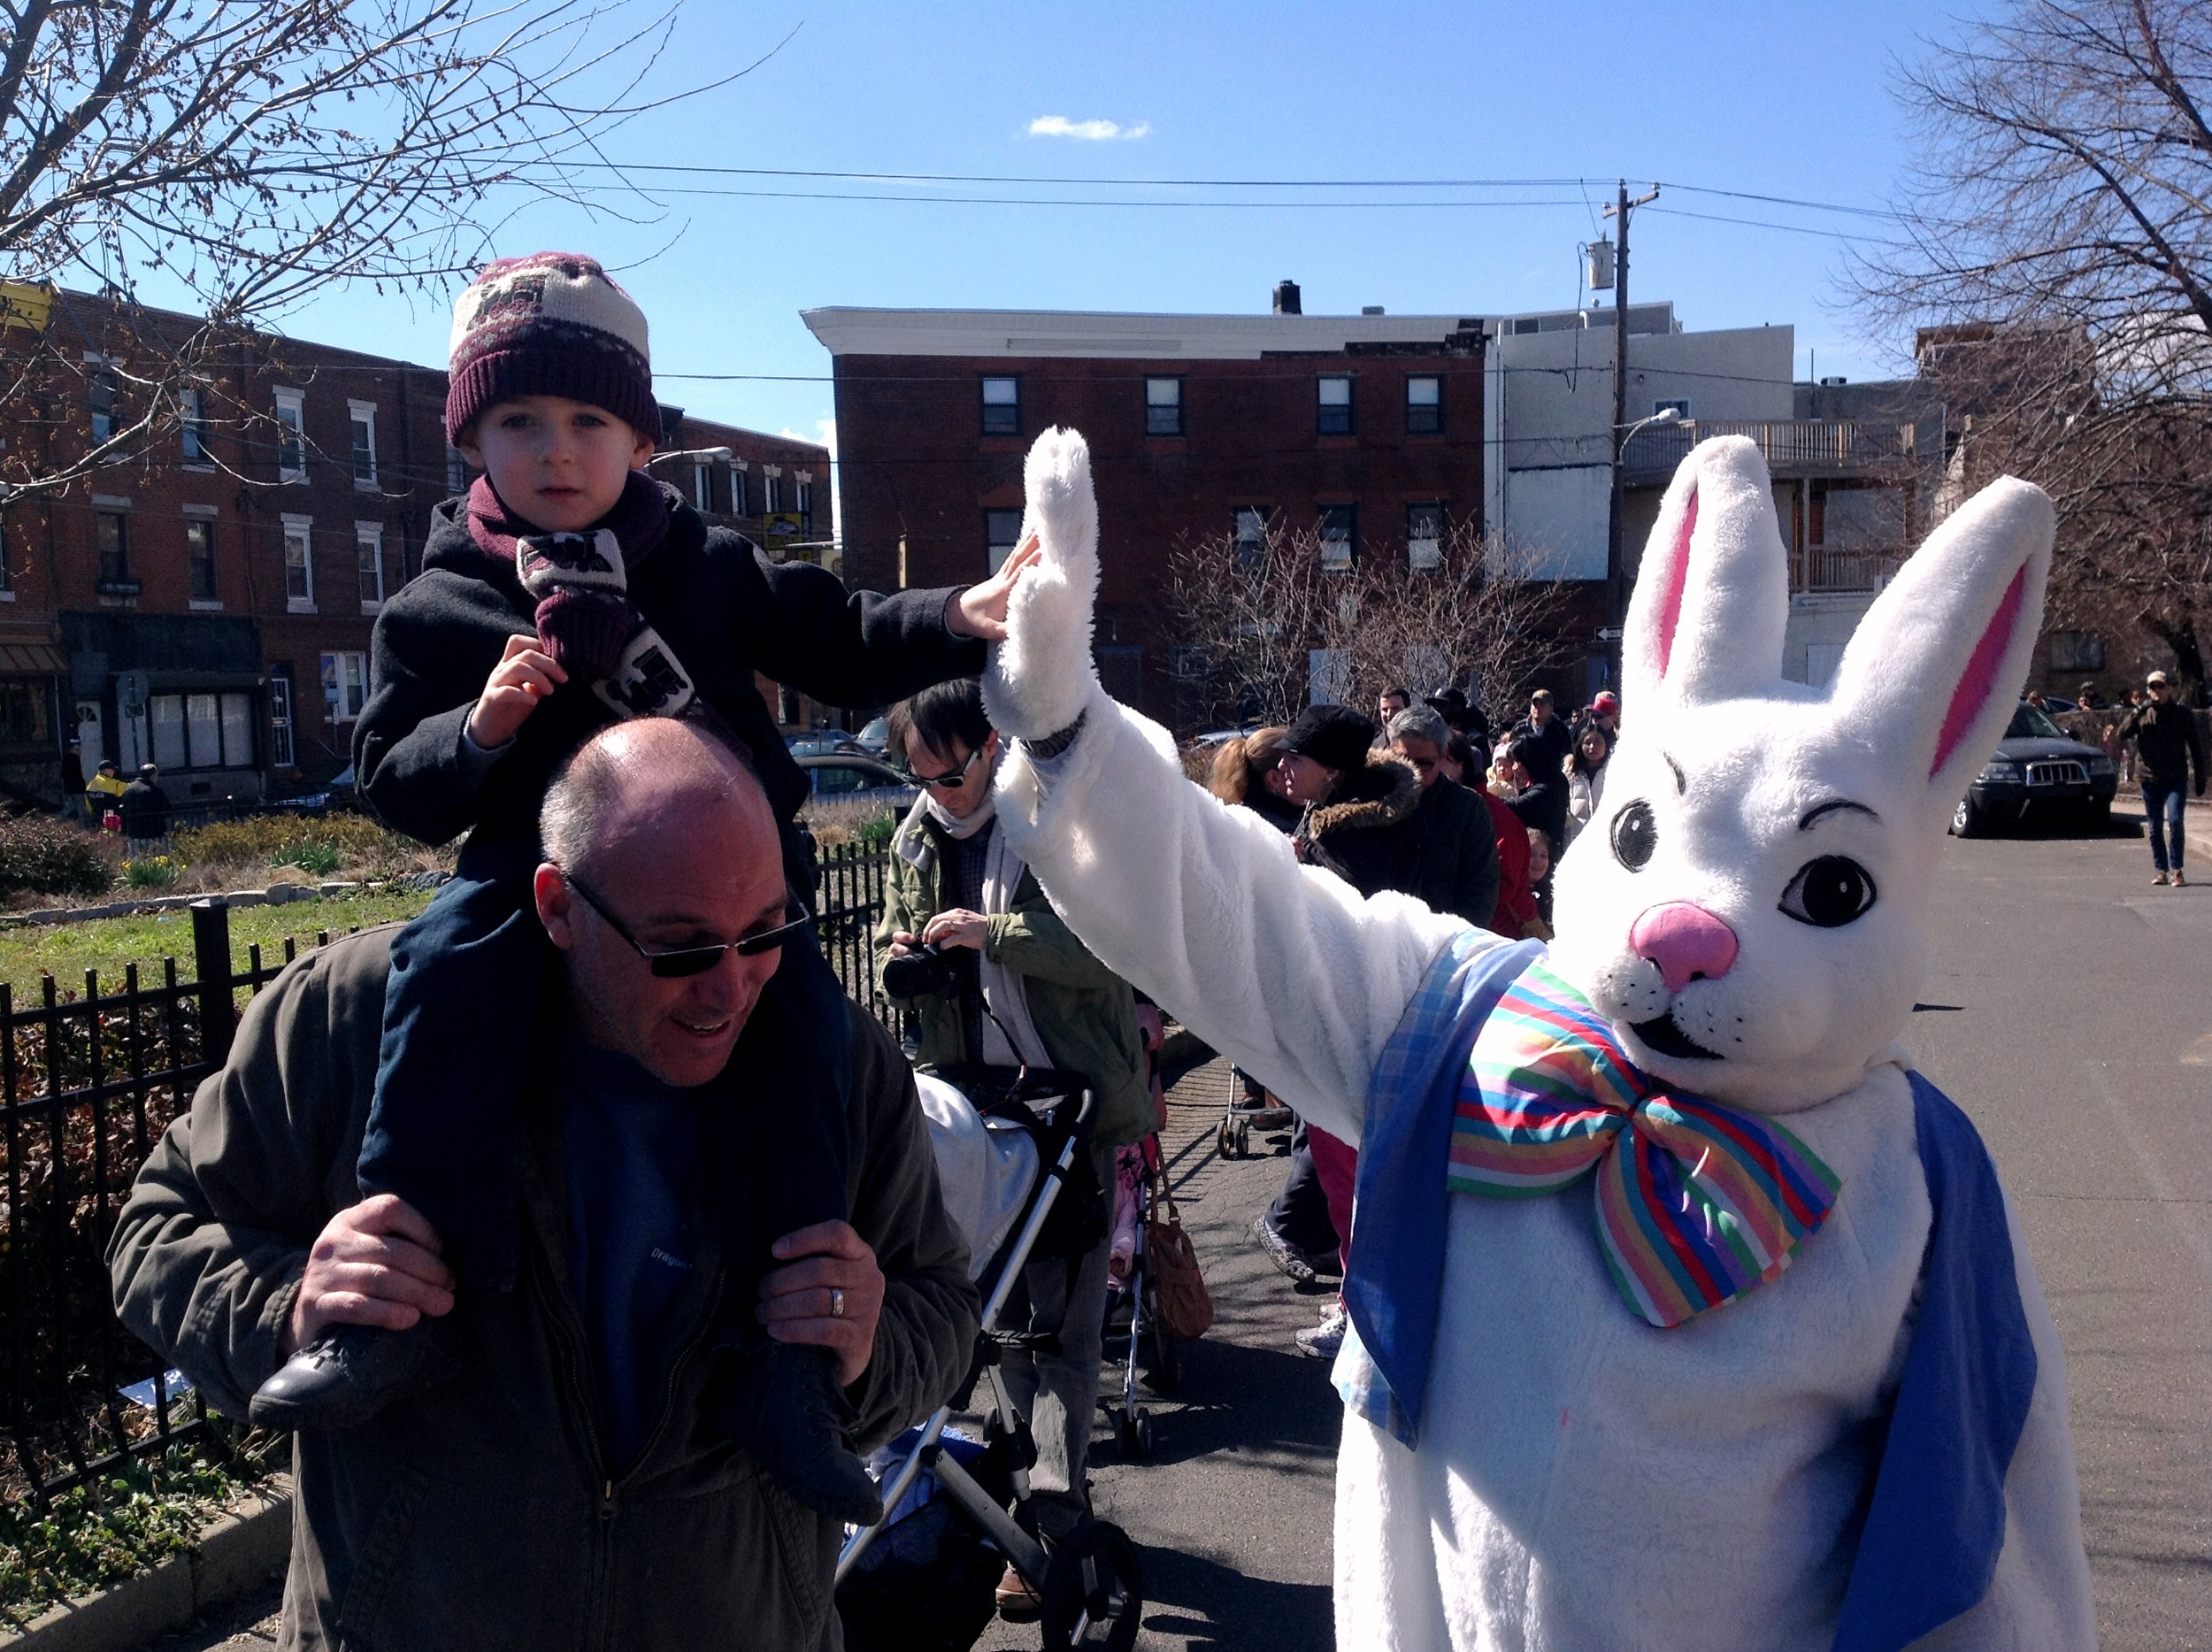 East Passyunk Egg Hunt, Bunny High Five